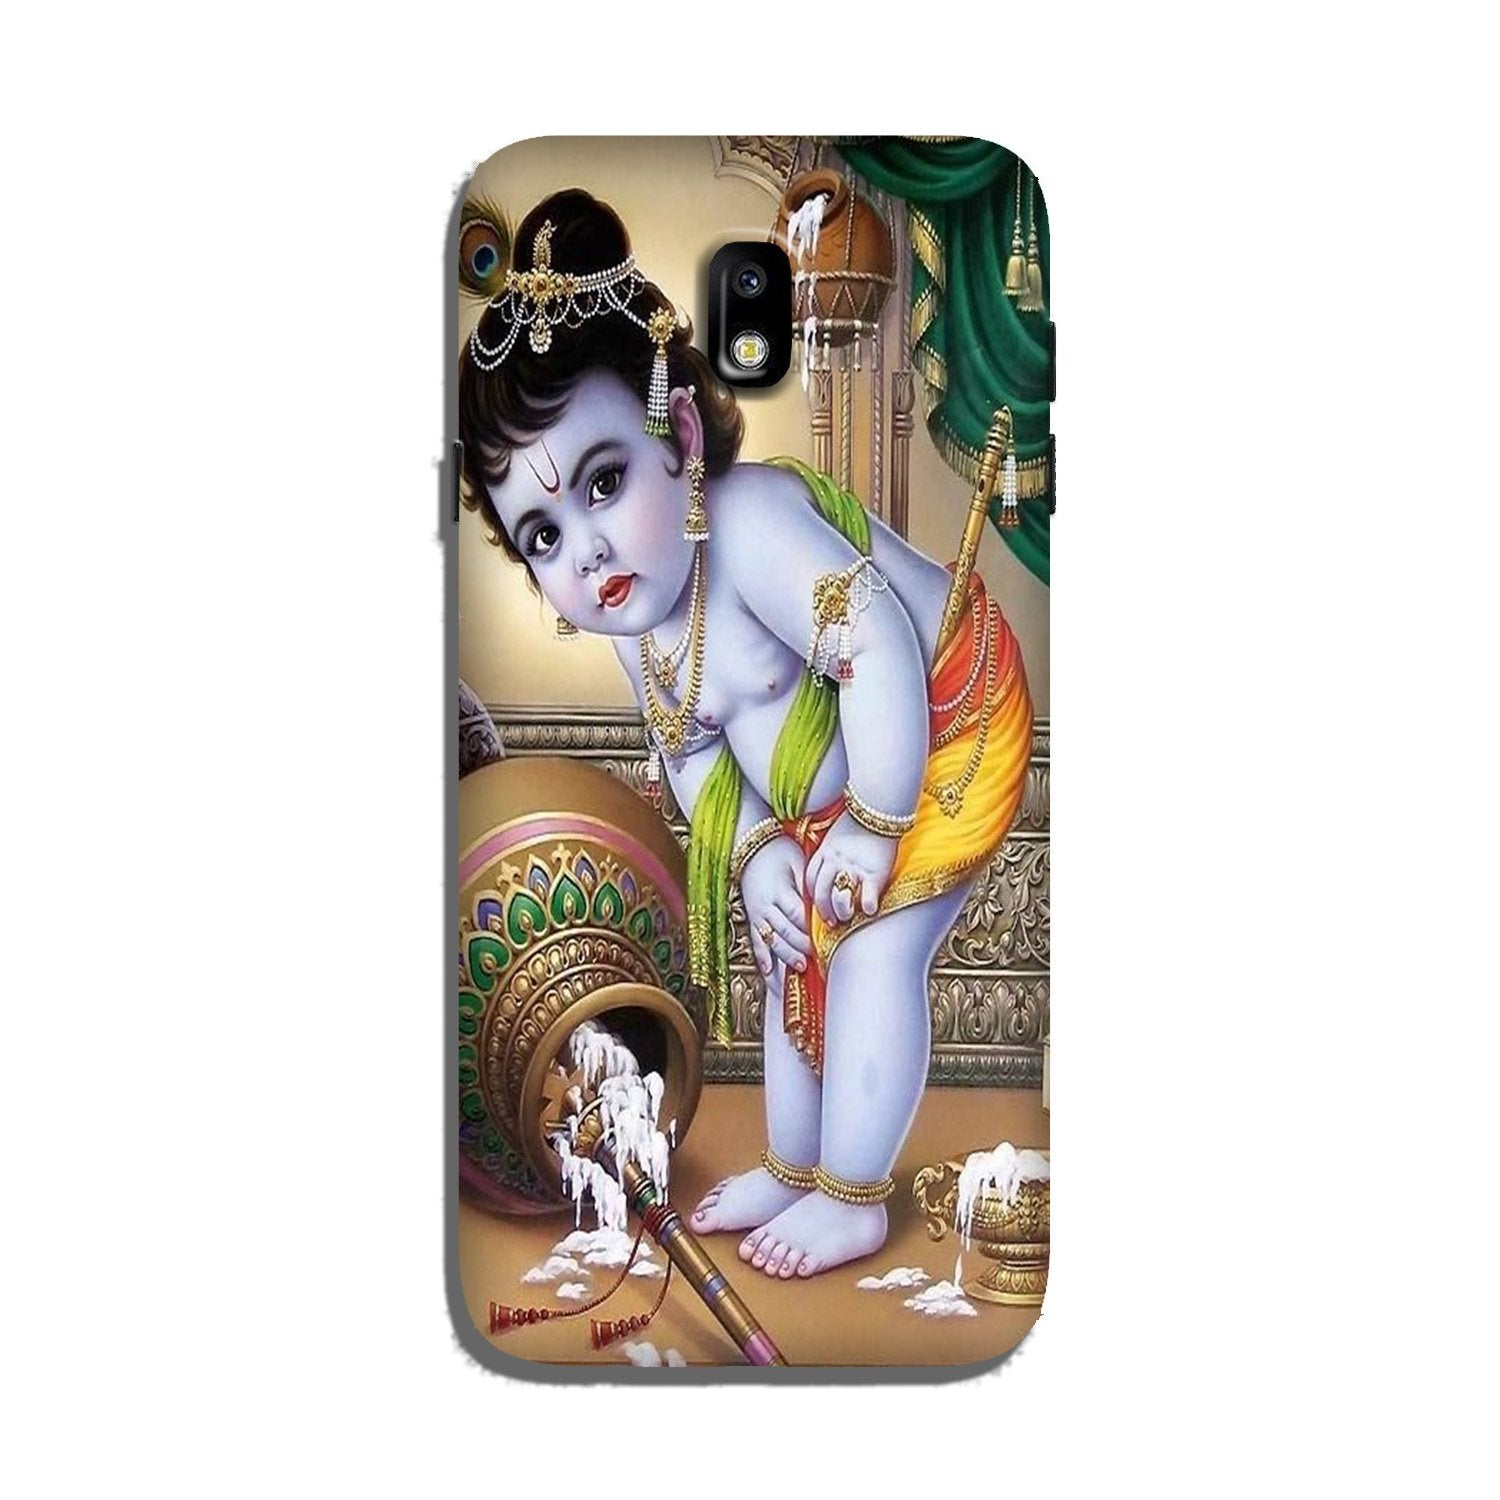 Bal Gopal2 Case for Galaxy J7 Pro